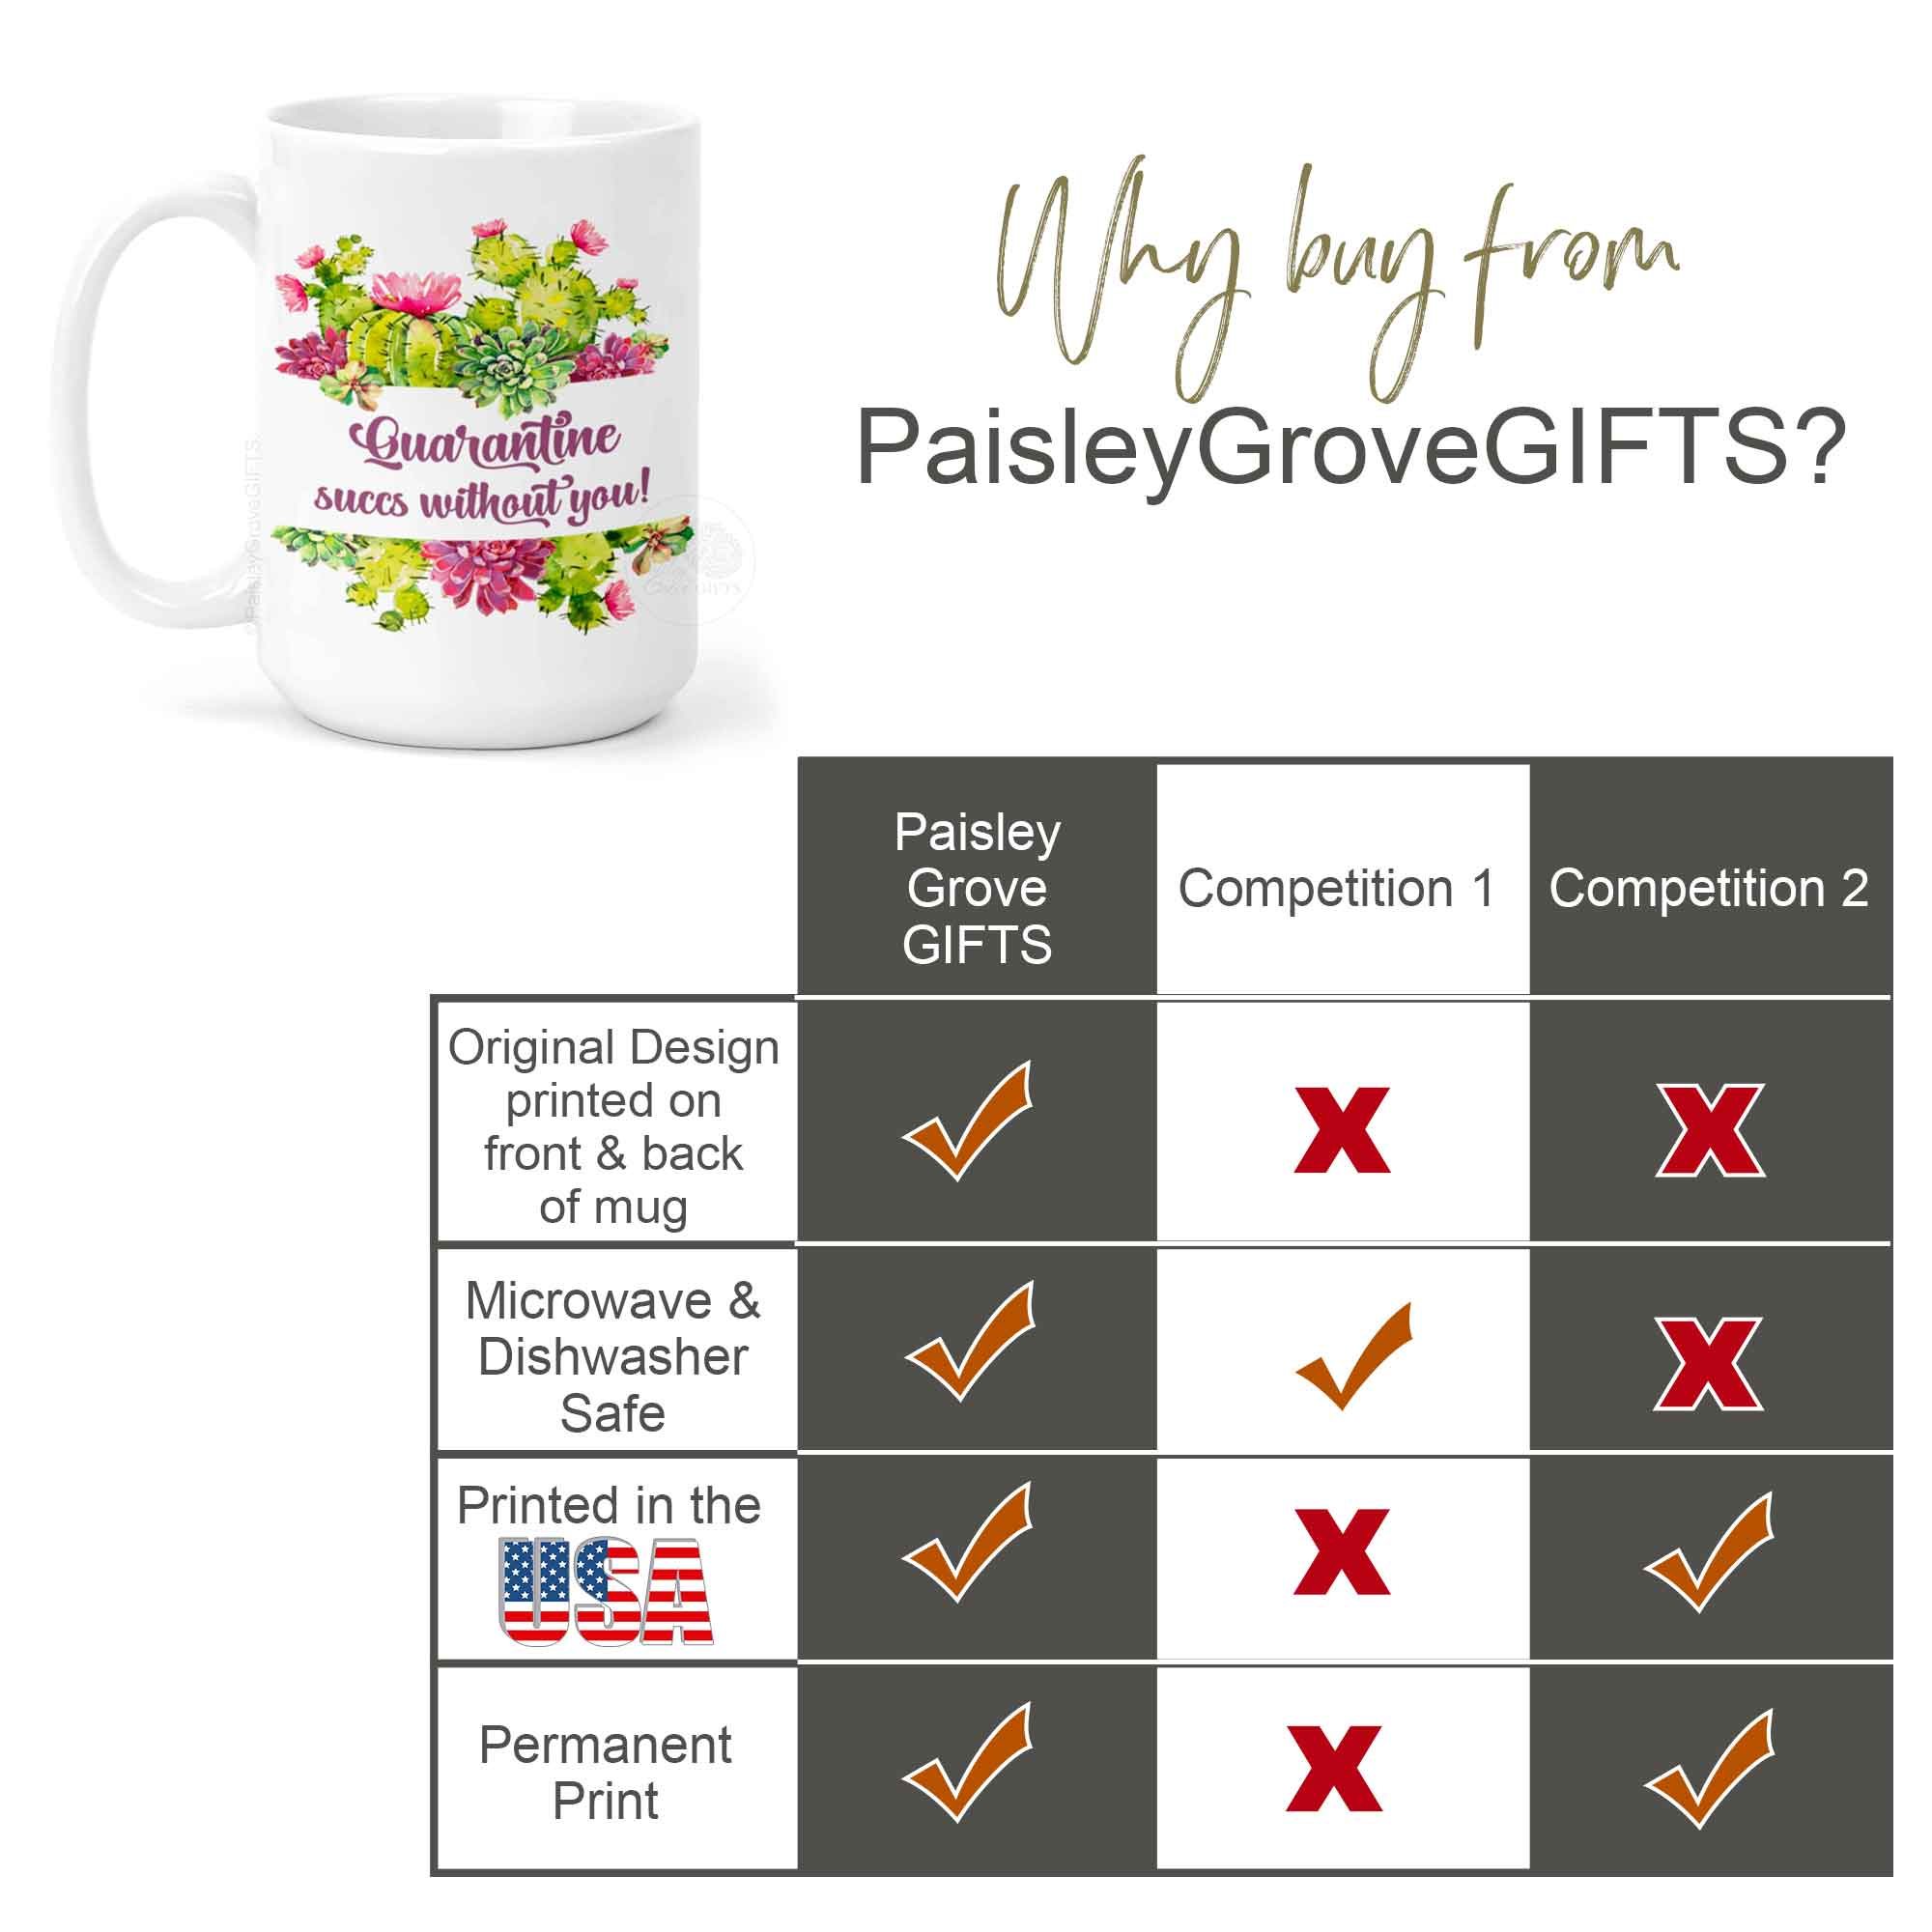 CopyrightPaisleyGroveGIFTS P010a comparison chart showing quality of quarantine succs without you mug from paisleygrovegifts